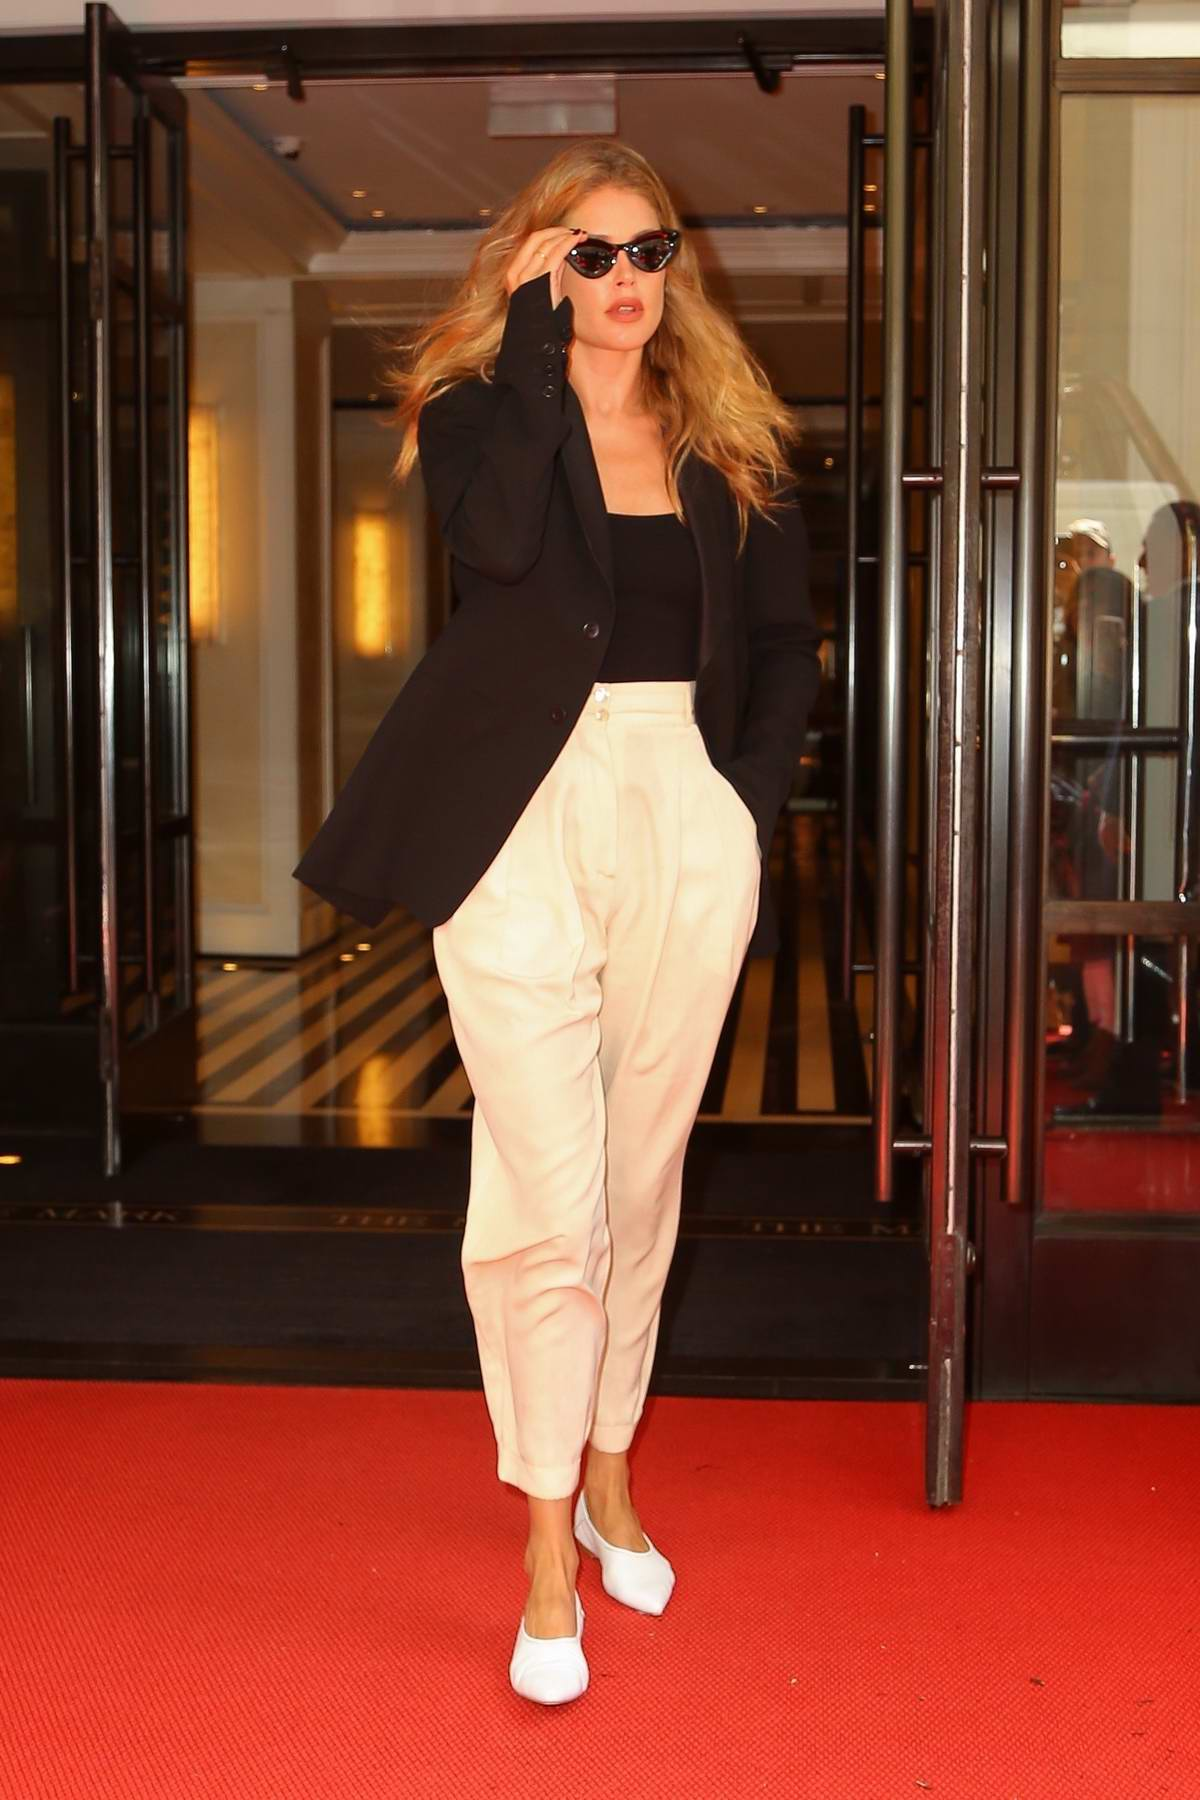 Doutzen Kroes keeps it stylish as she leaves The Mark in New York City